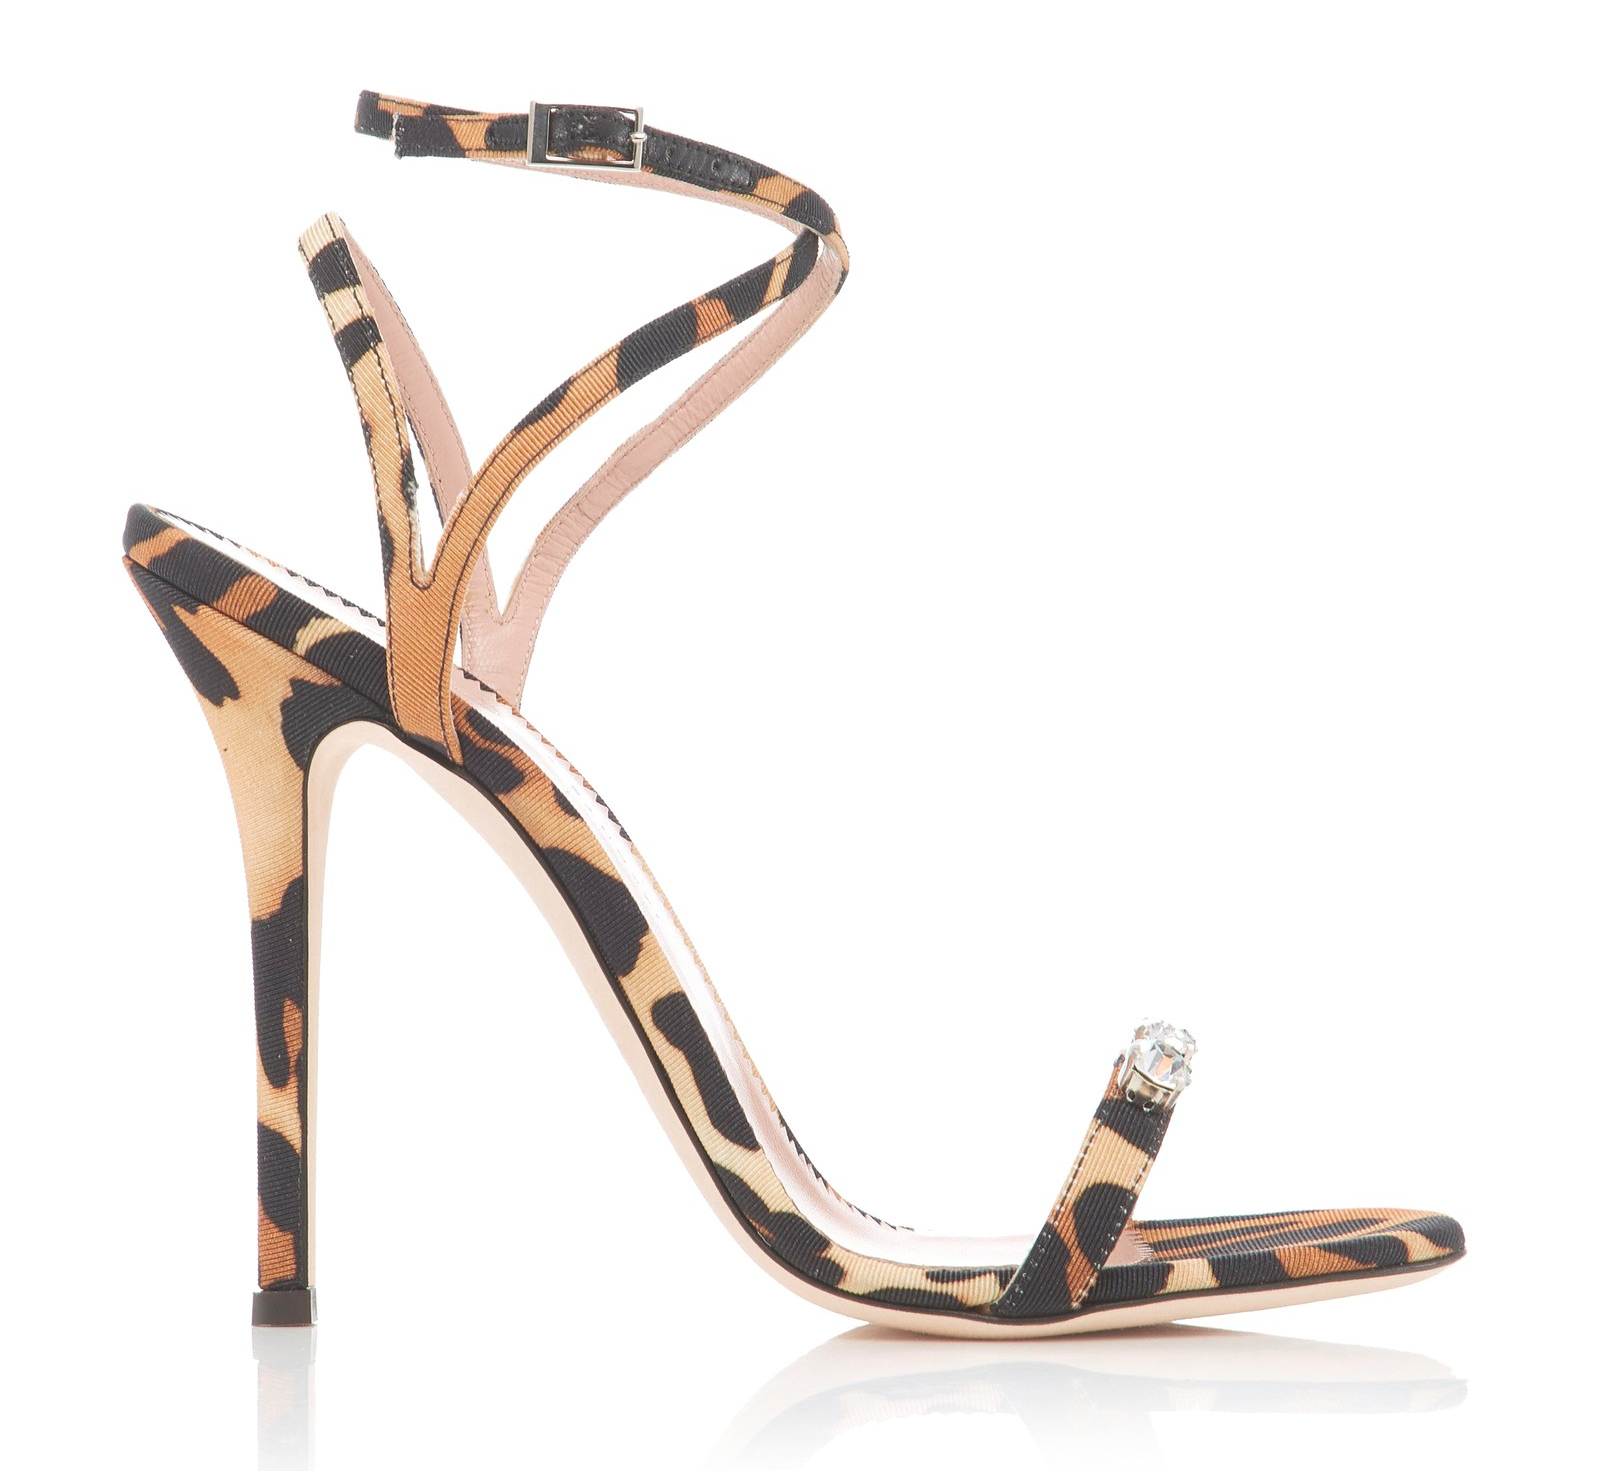 large_giuseppe-zanotti-animal-silk-jaguar-alien-stiletto-sandals_animalistic_trend_1/18